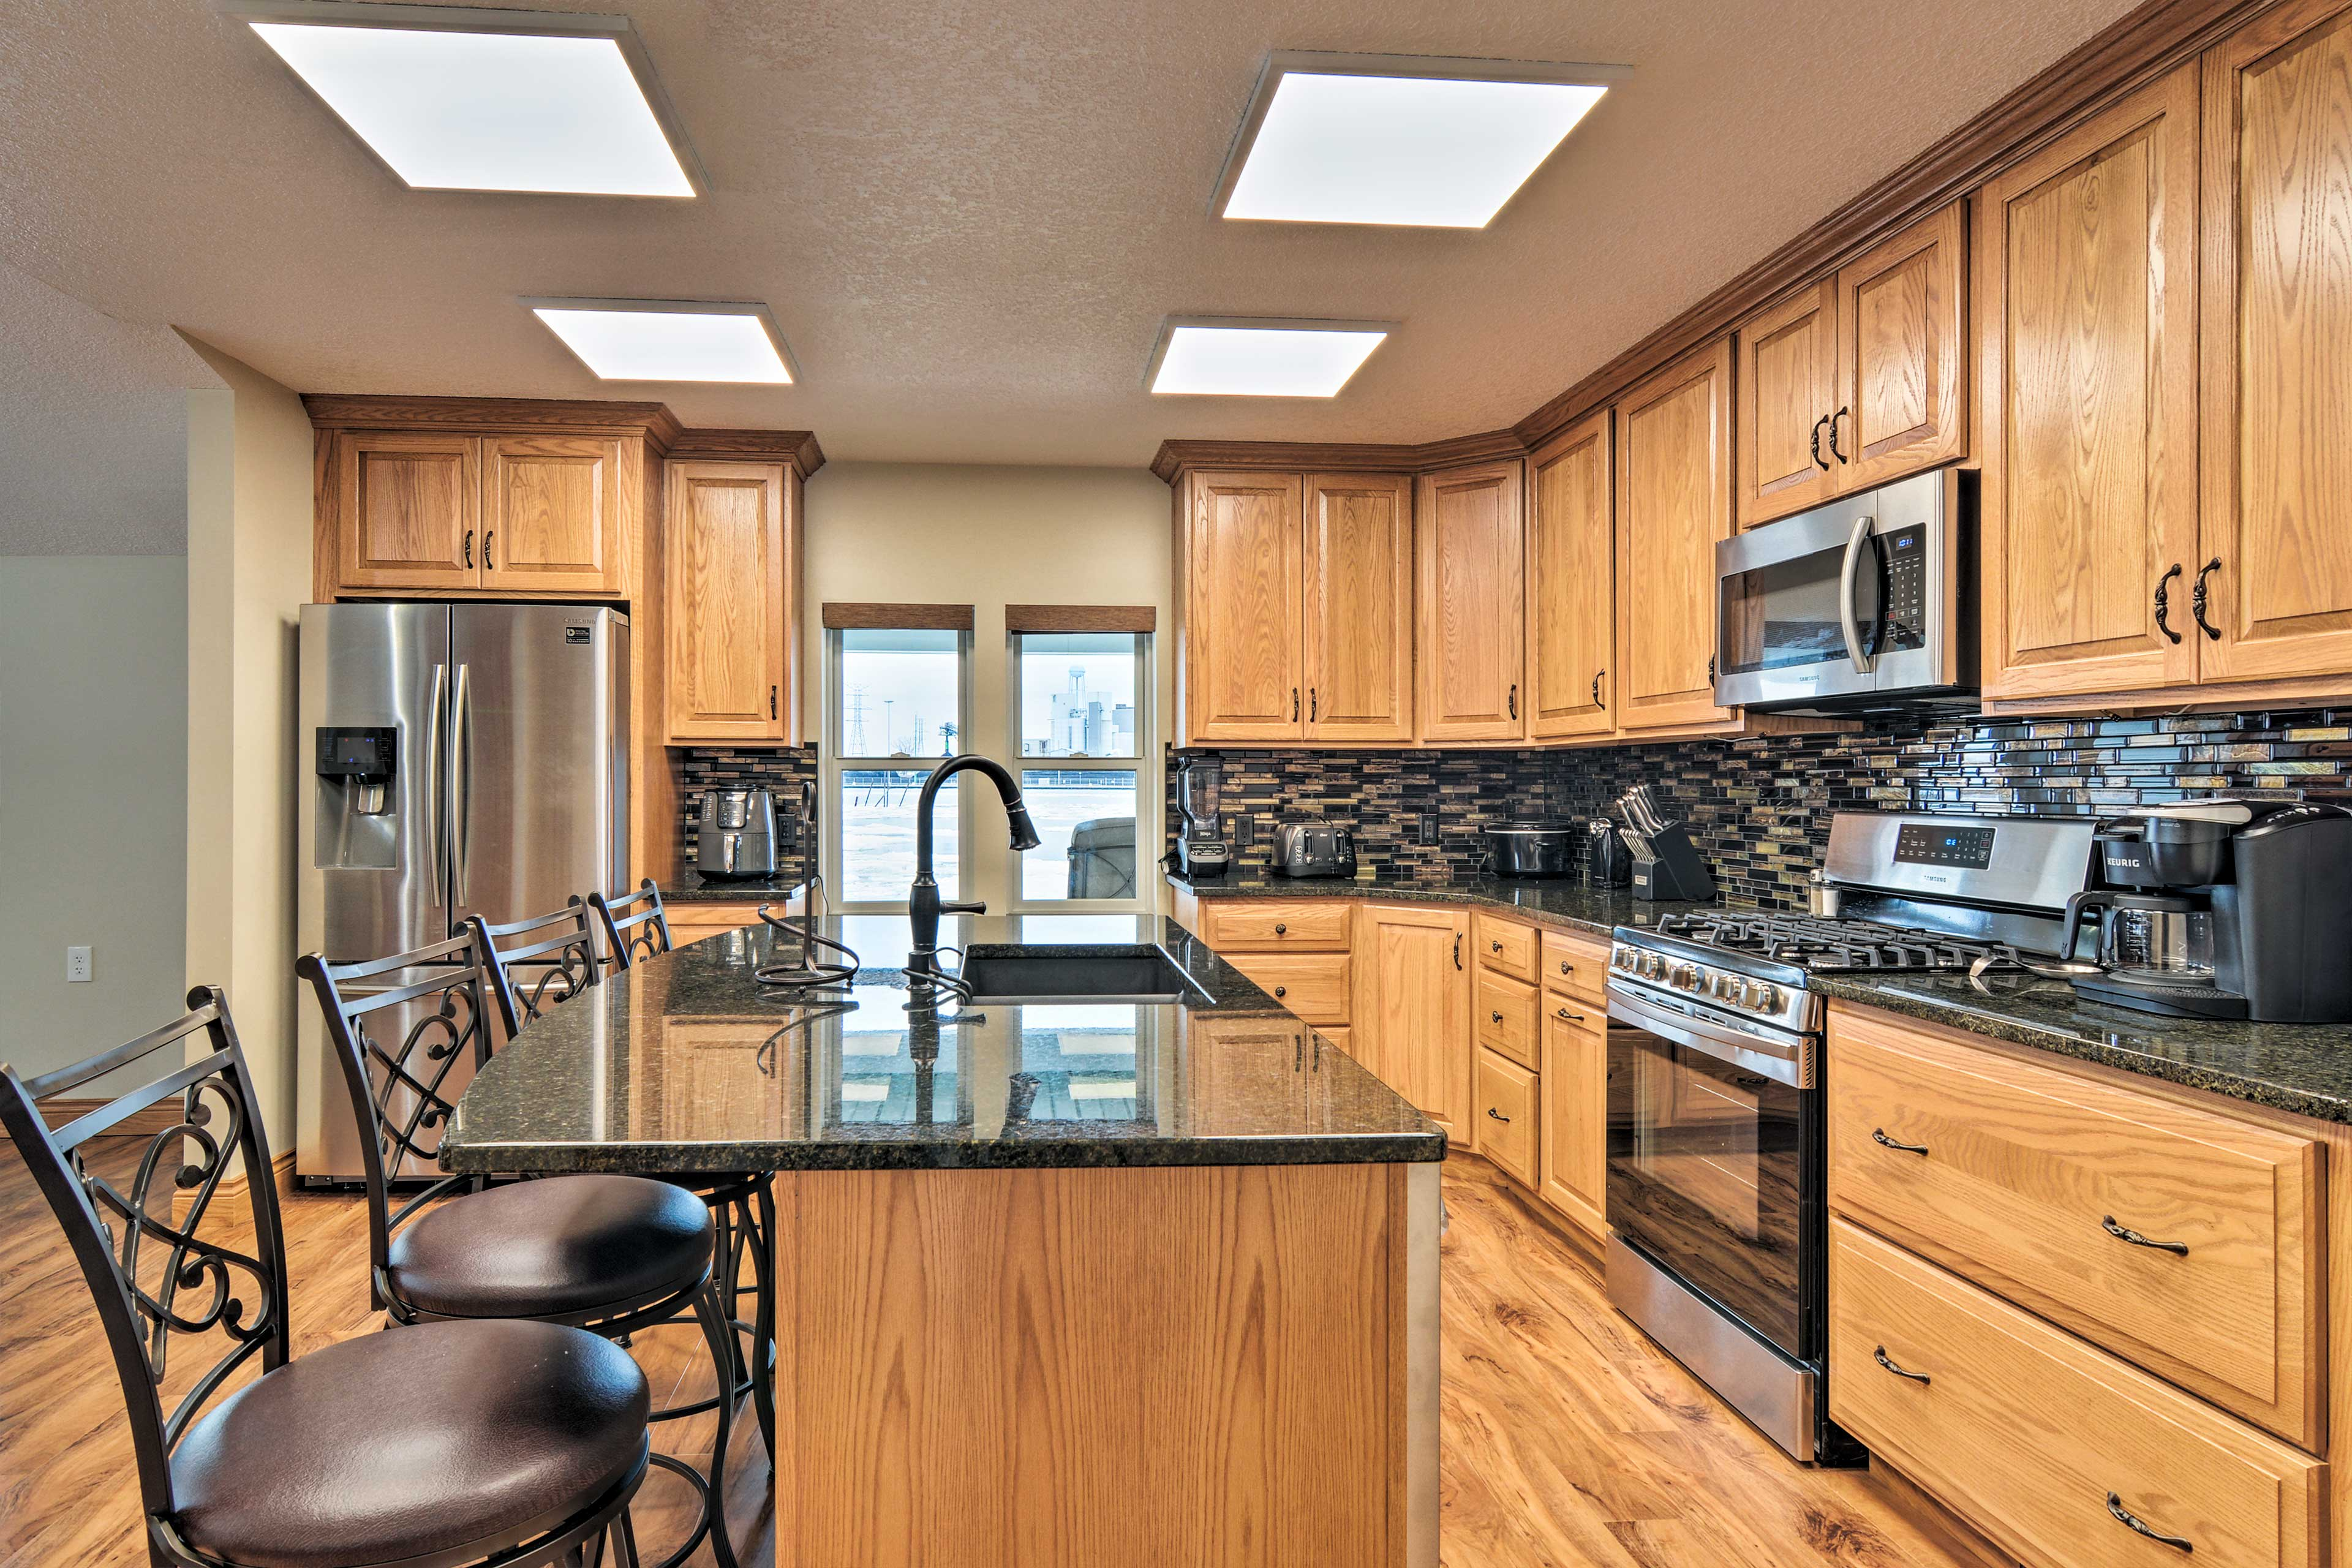 Say goodbye to efficiency kitchens when your stay at this incredible home!